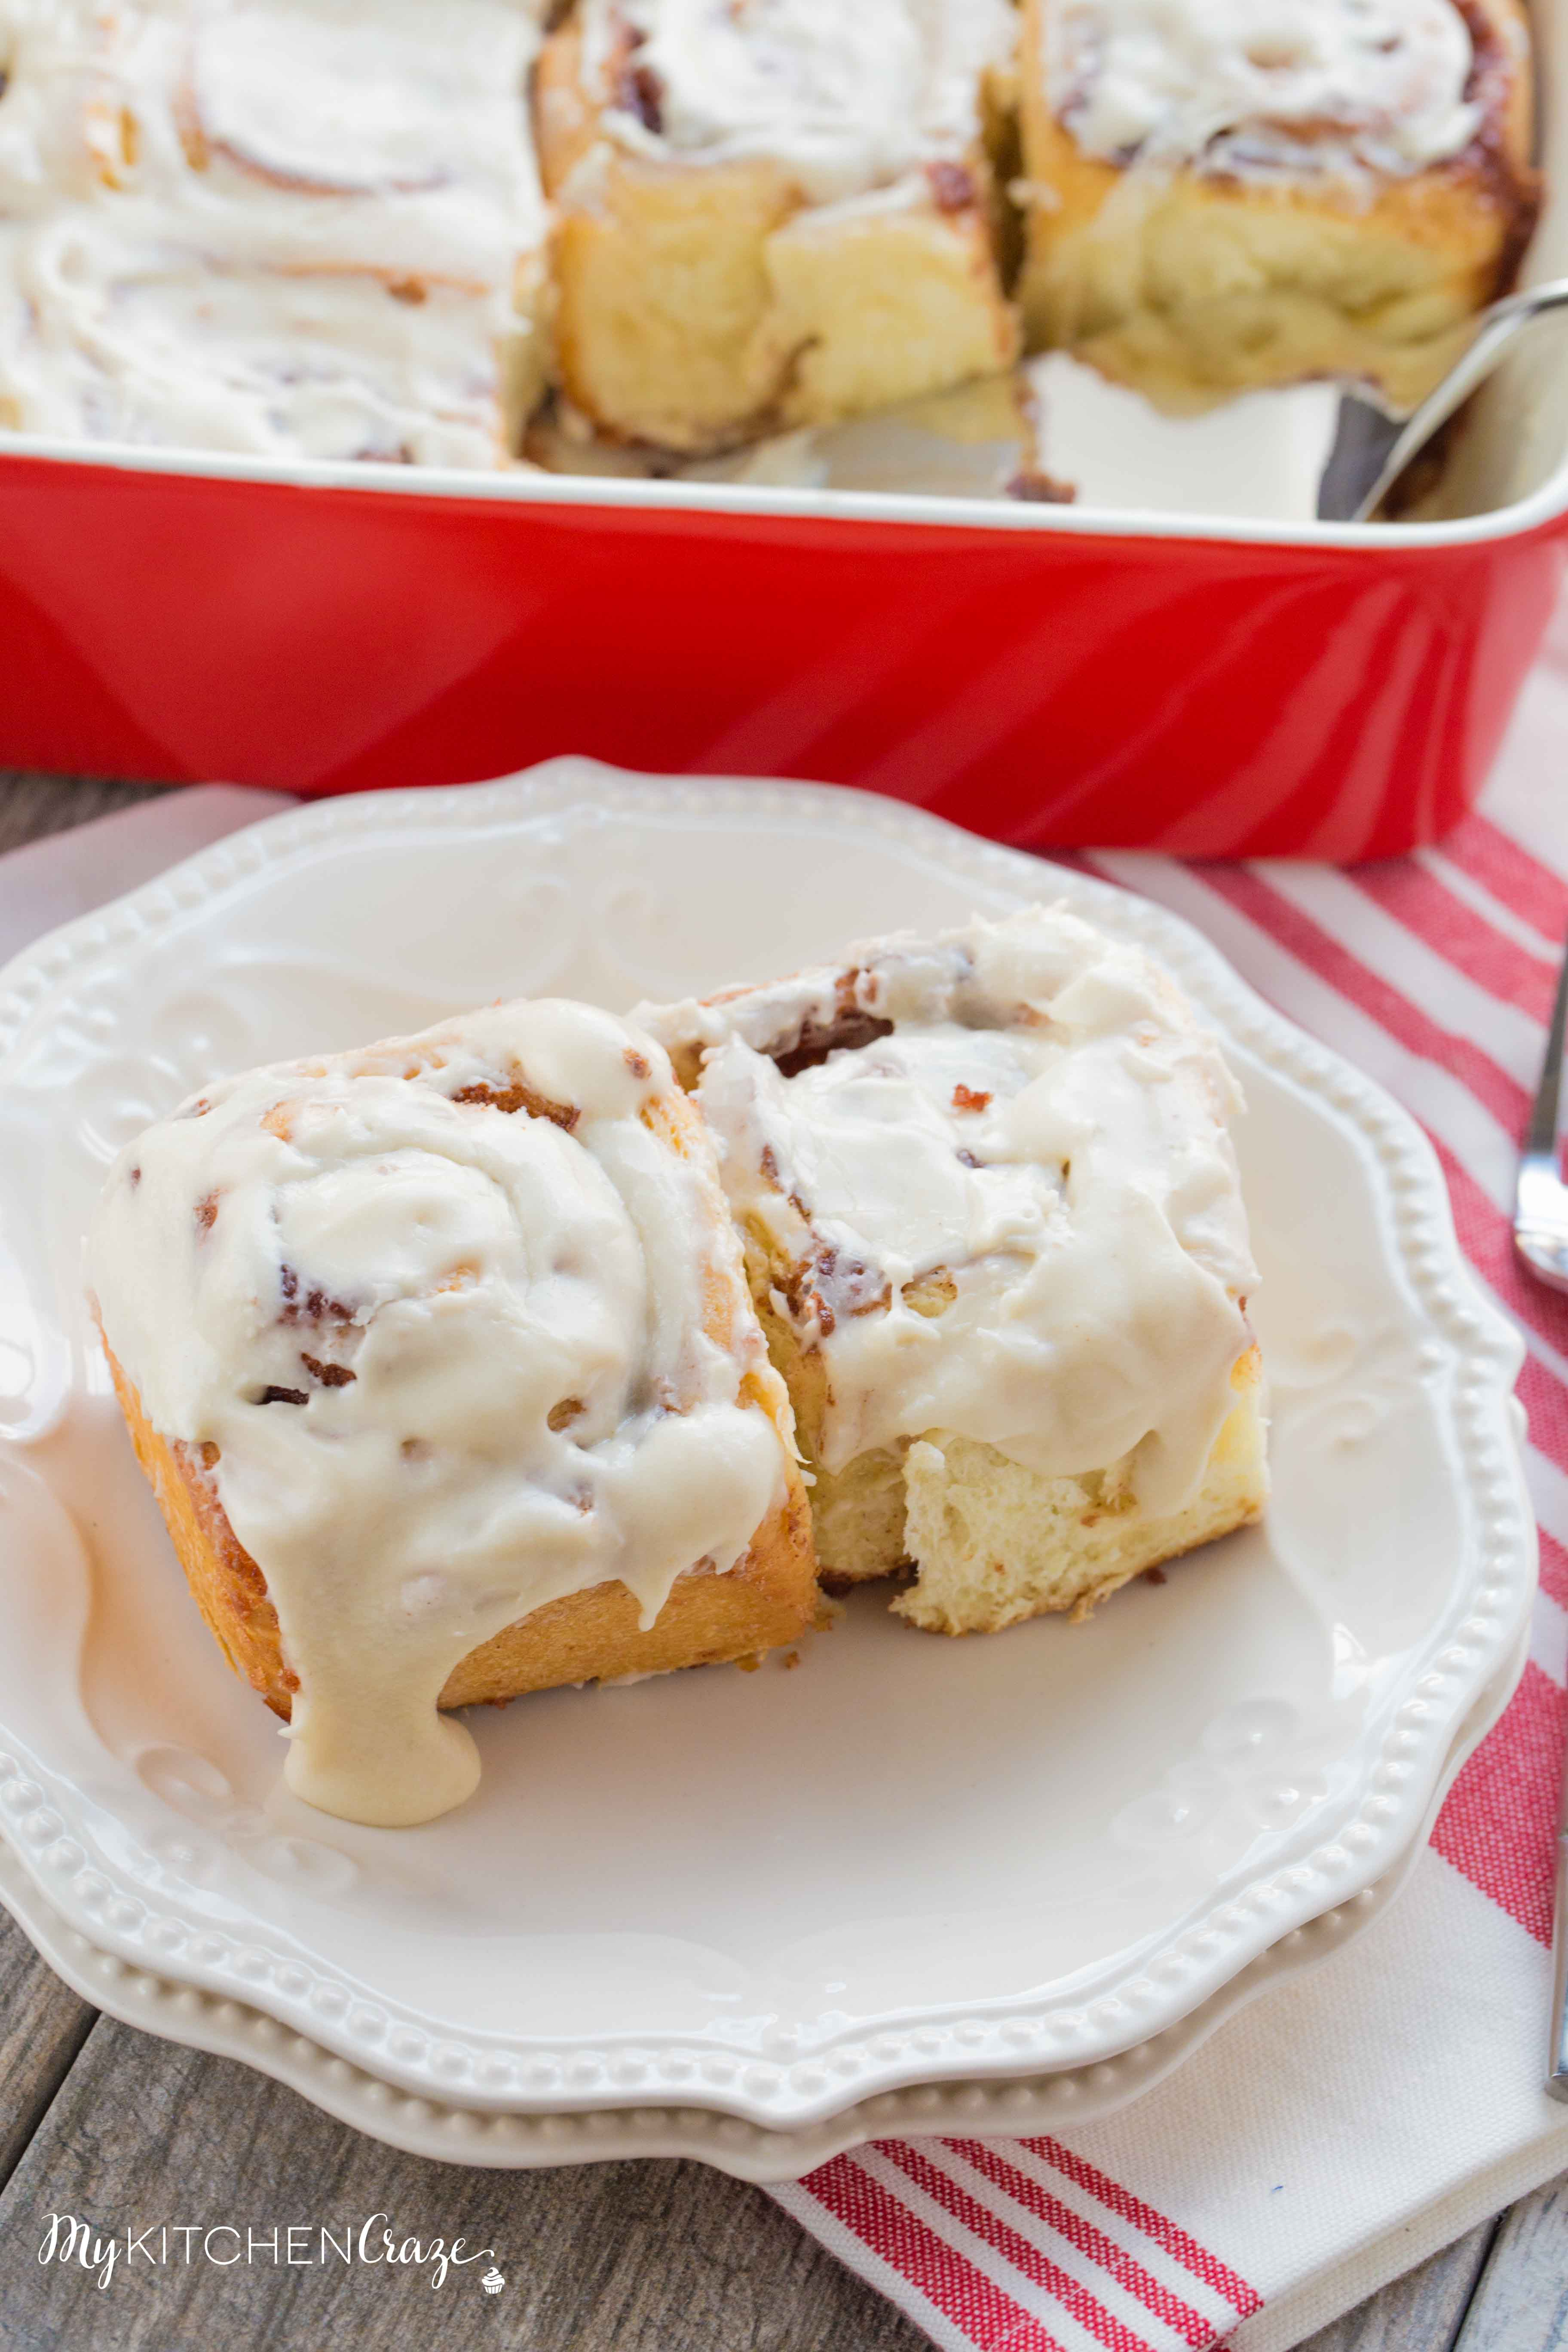 Classic Cinnamon Rolls ~ mykitchencraze.com ~ Wake up to the smell of a delicious moist cinnamon roll! Be sure to grab that cup of coffee.